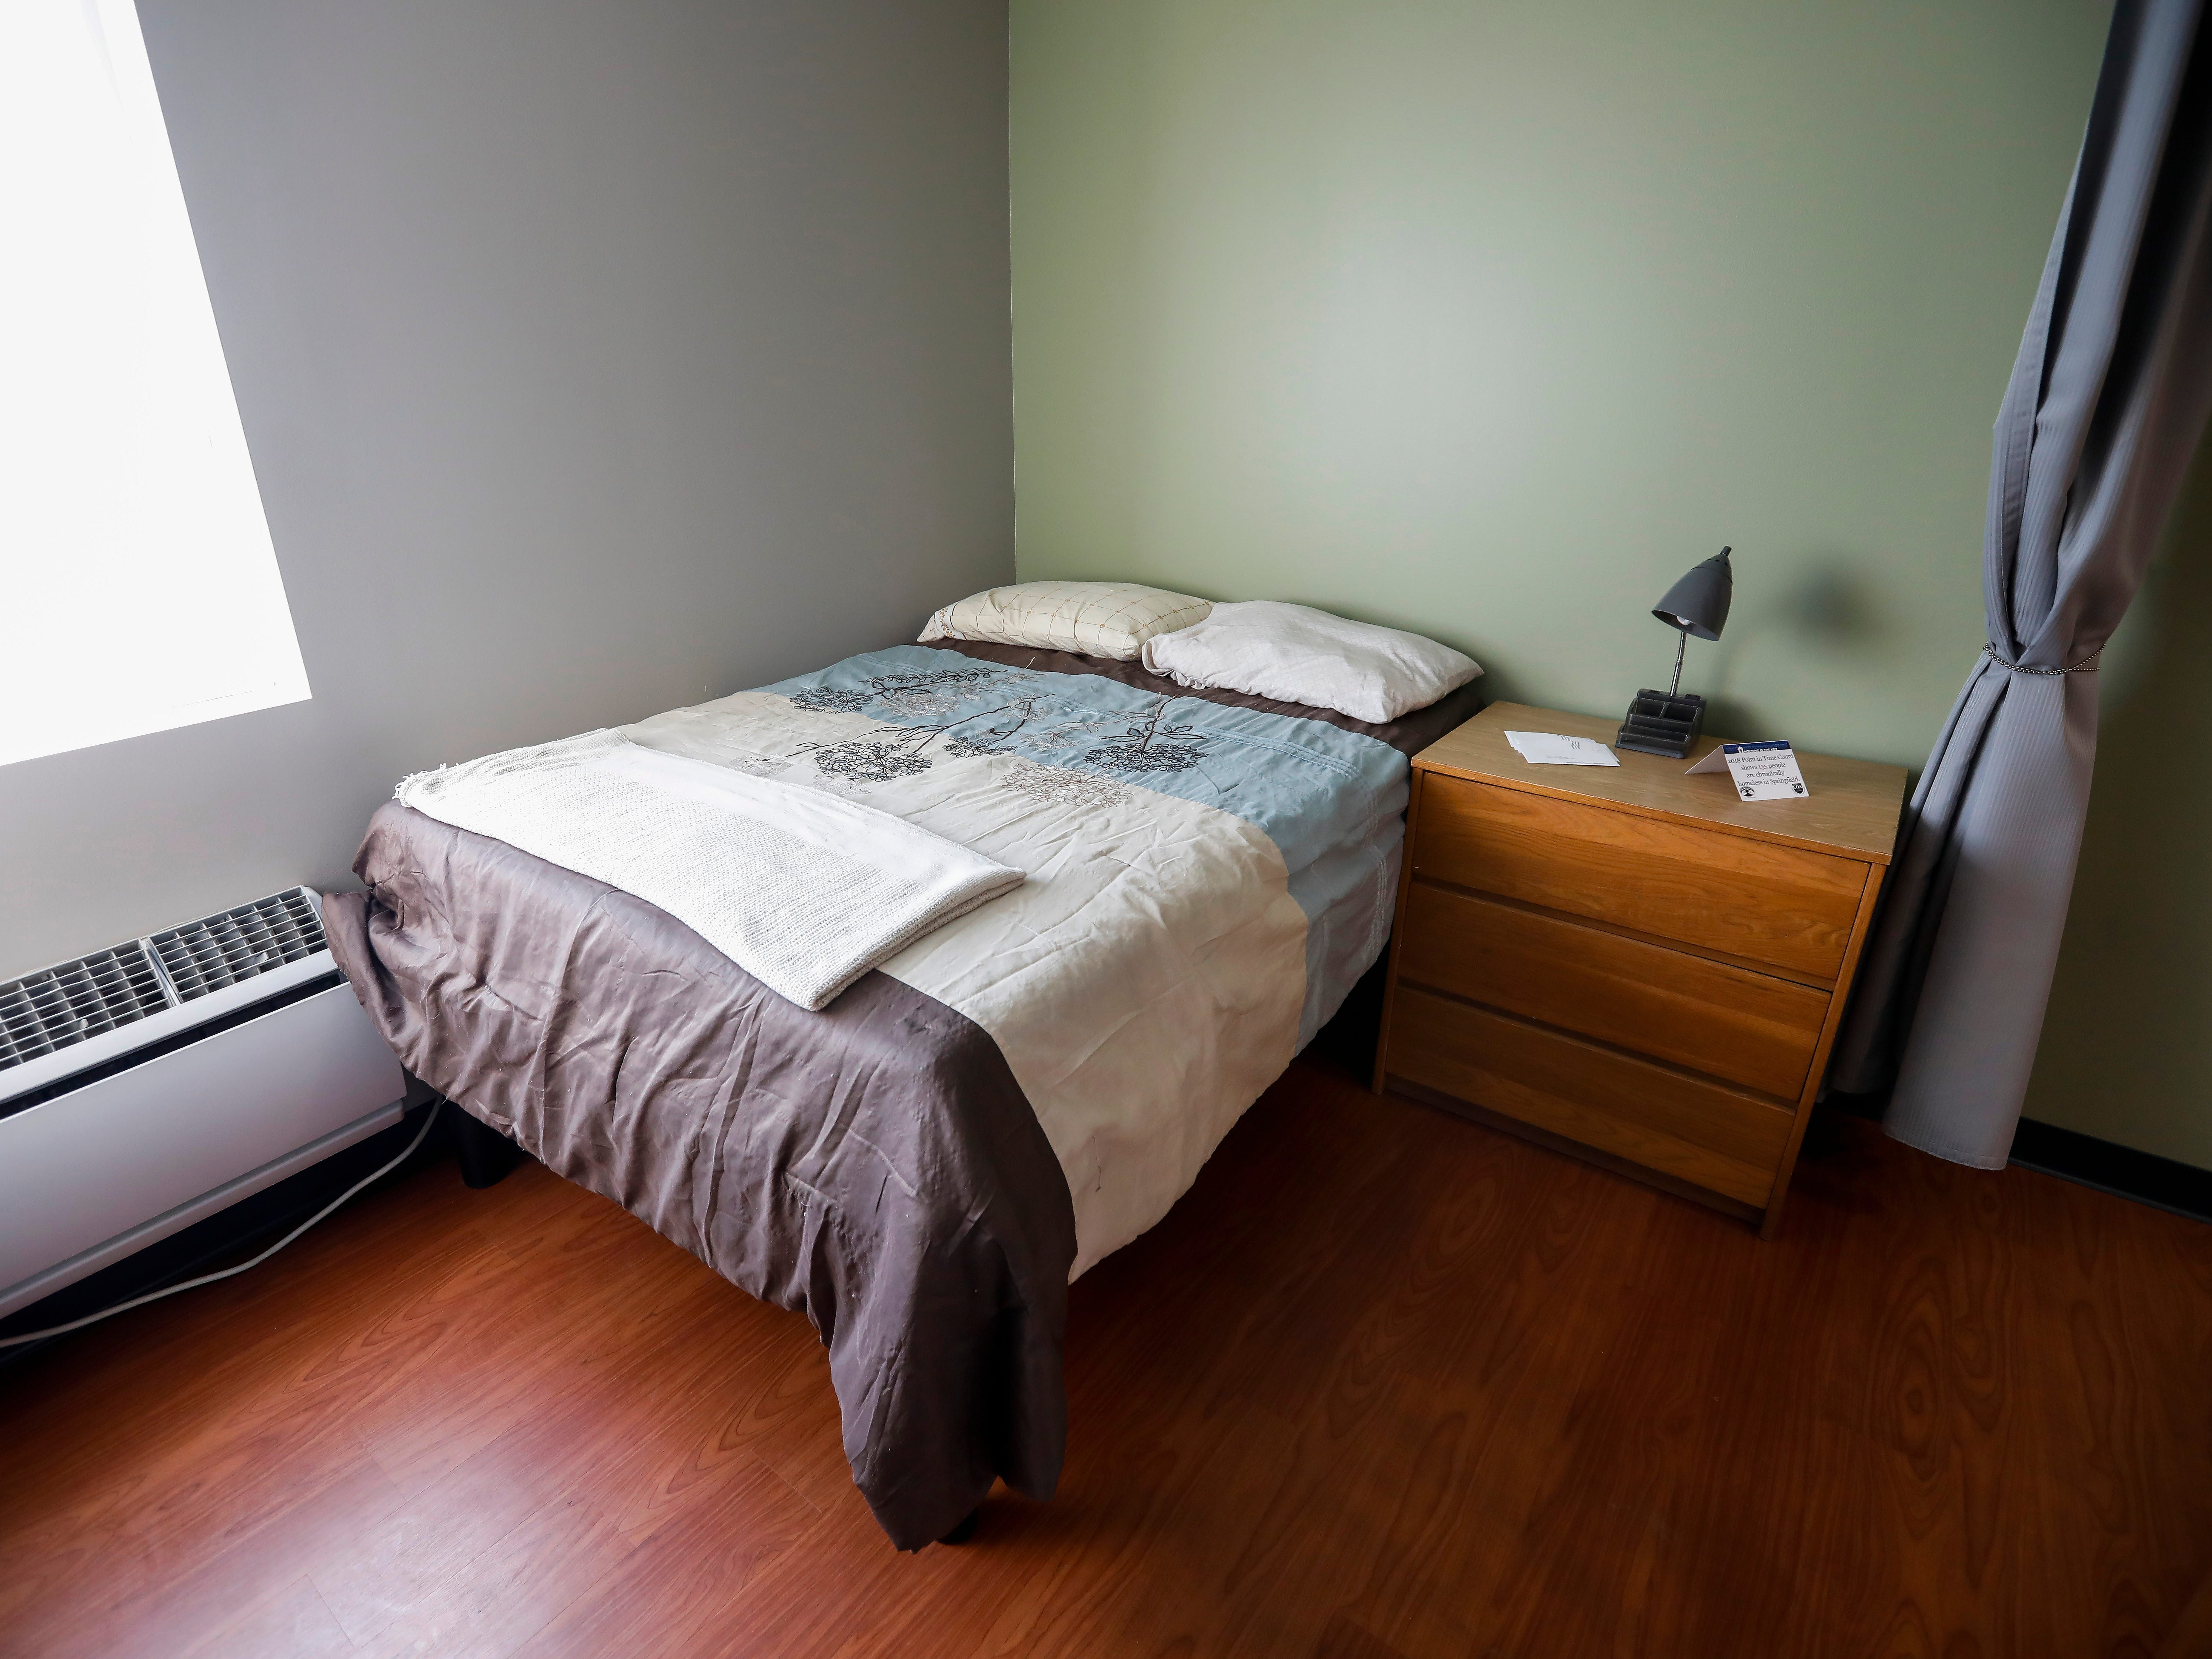 A twin bed inside one of the apartments at The Kitchen's new Emergency Shelter located at 1855 E. Chestnut Expressway.